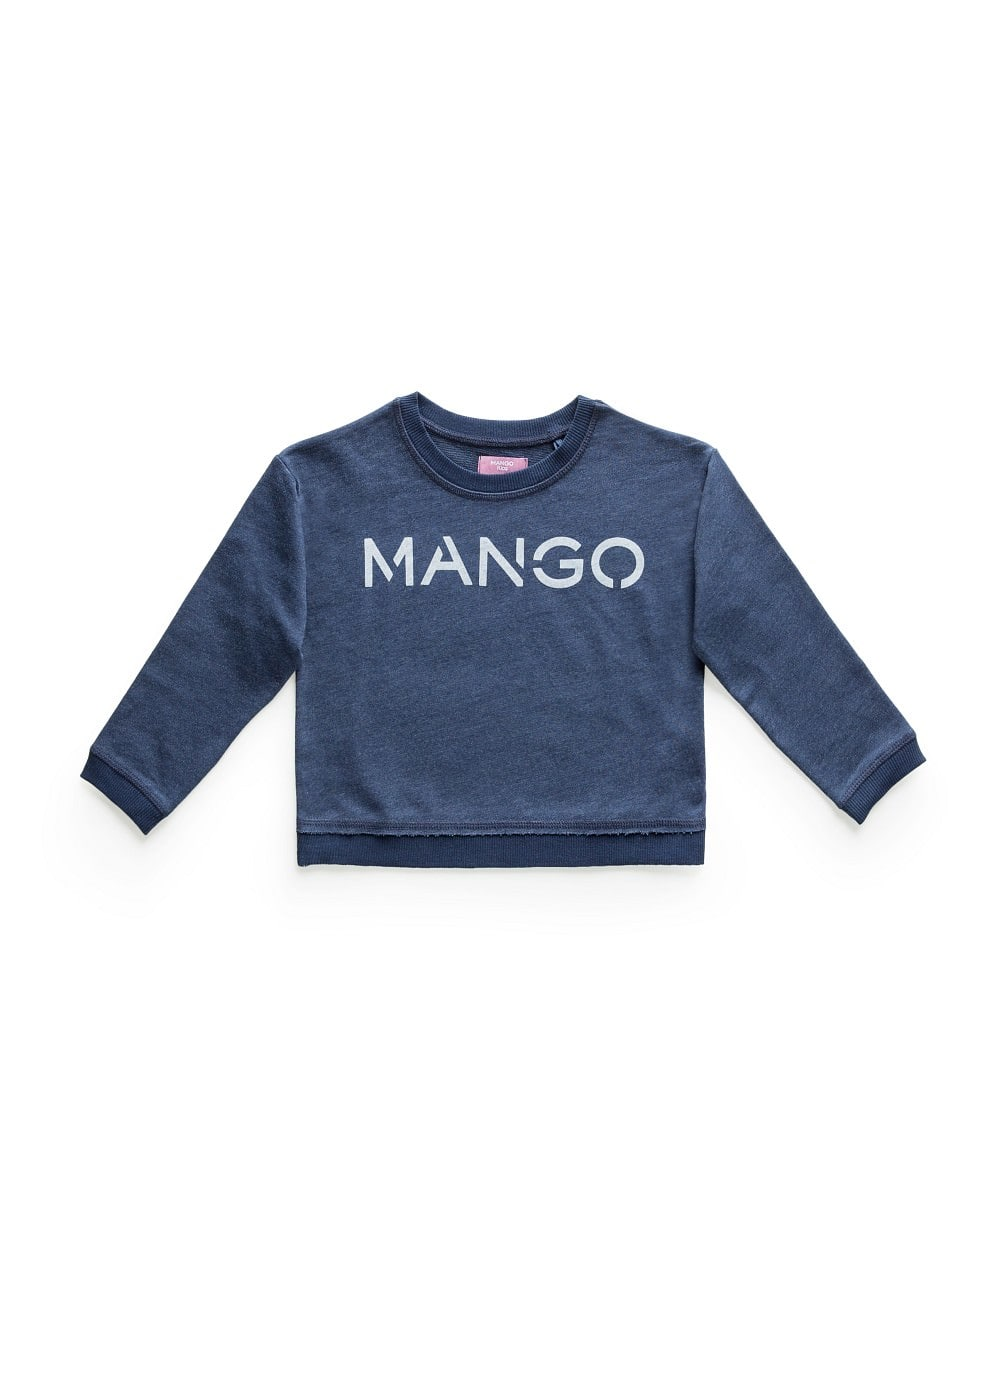 Cotton-blend logo sweatshirt | MANGO KIDS